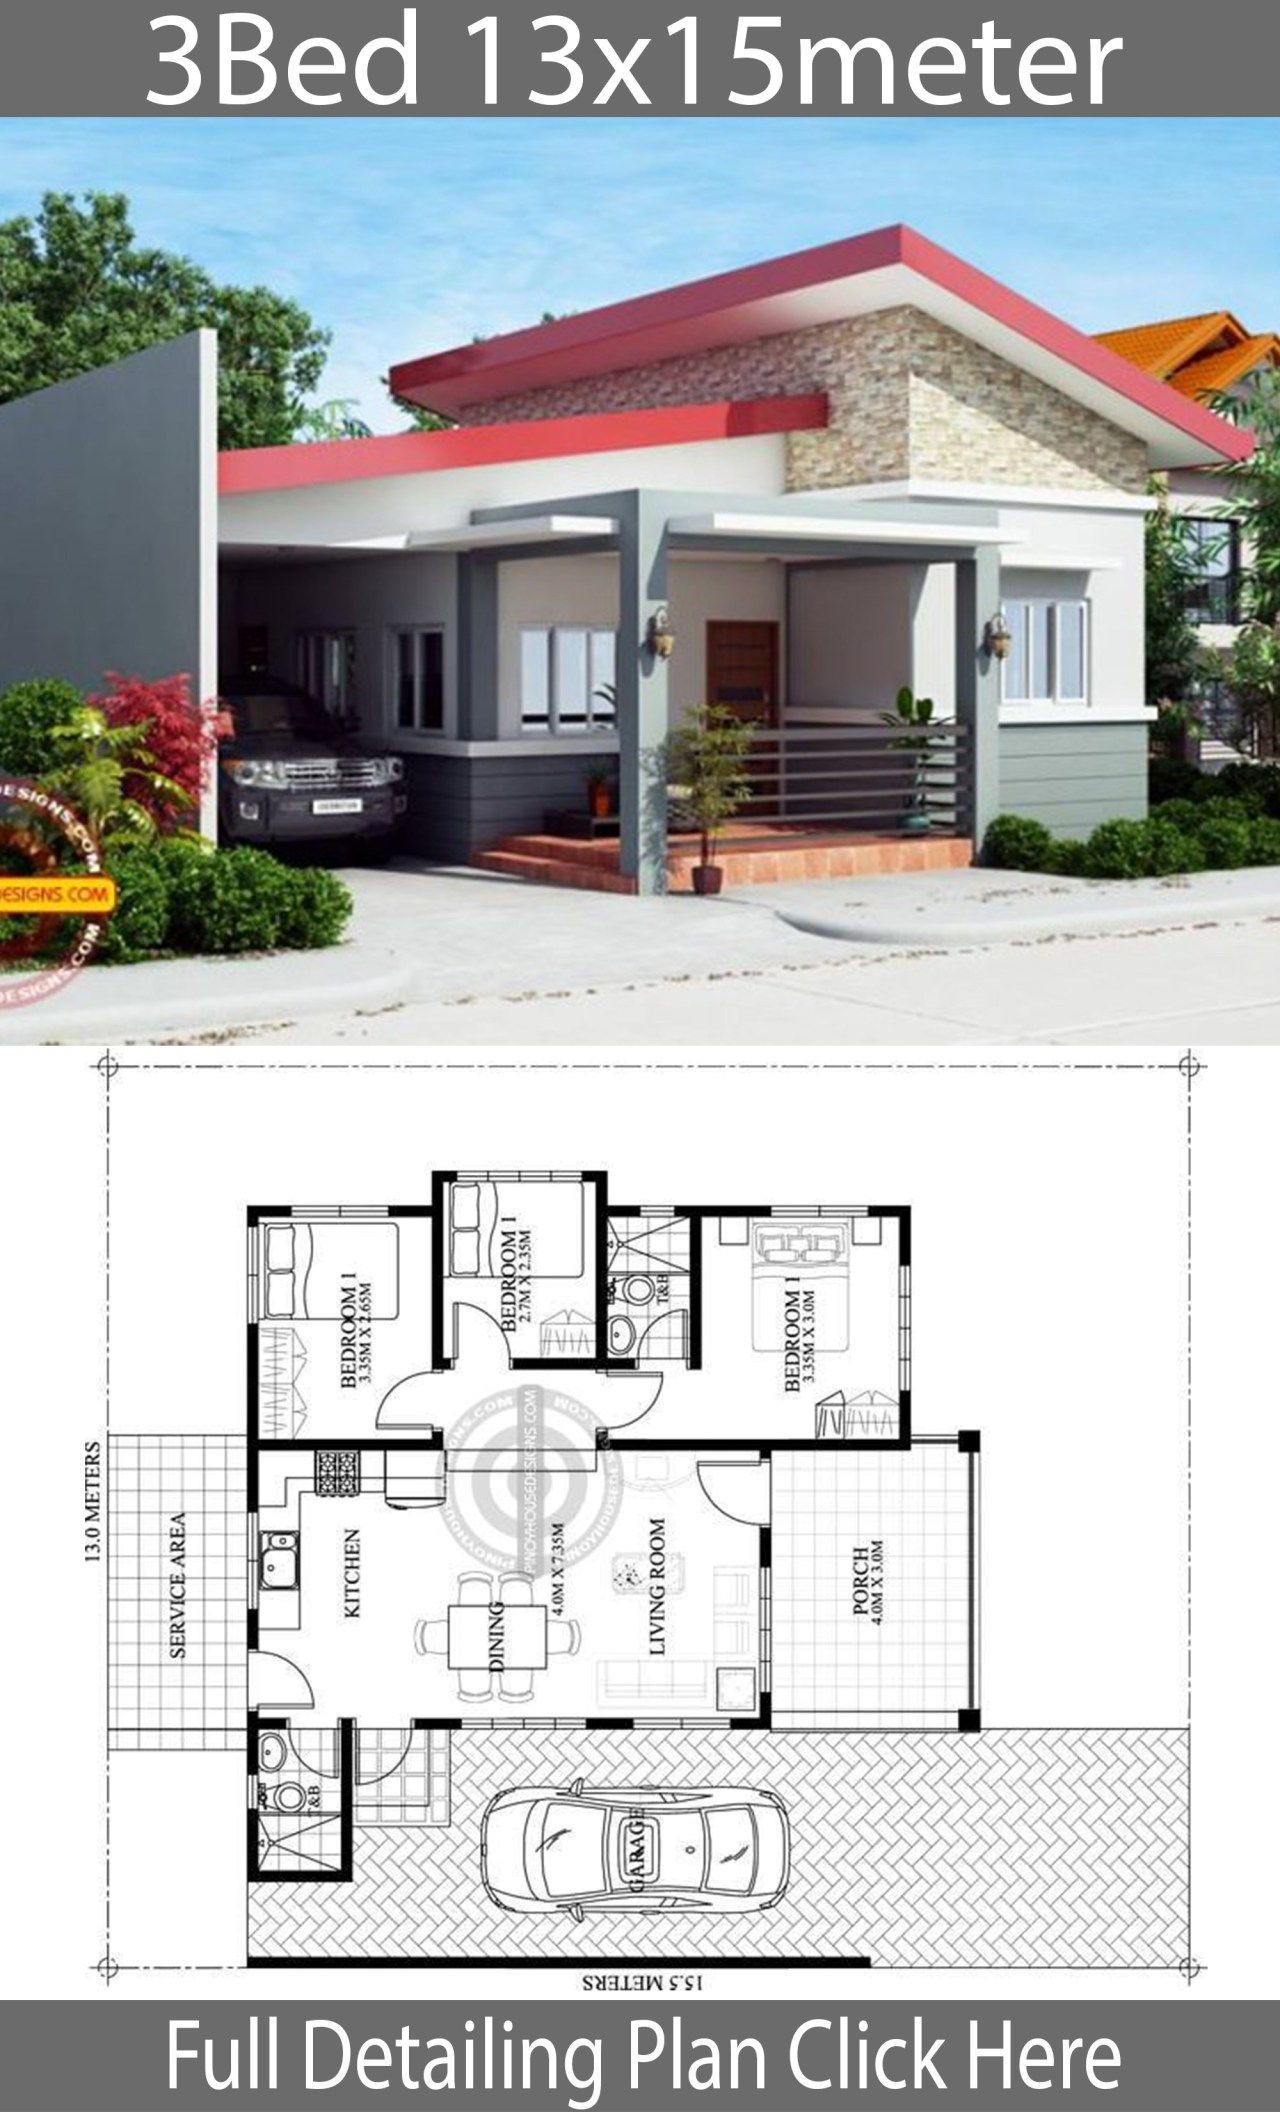 Home Design Plan 13x15m With 3 Bedrooms Home Ideas Affordable House Plans House Construction Plan House Plan Gallery